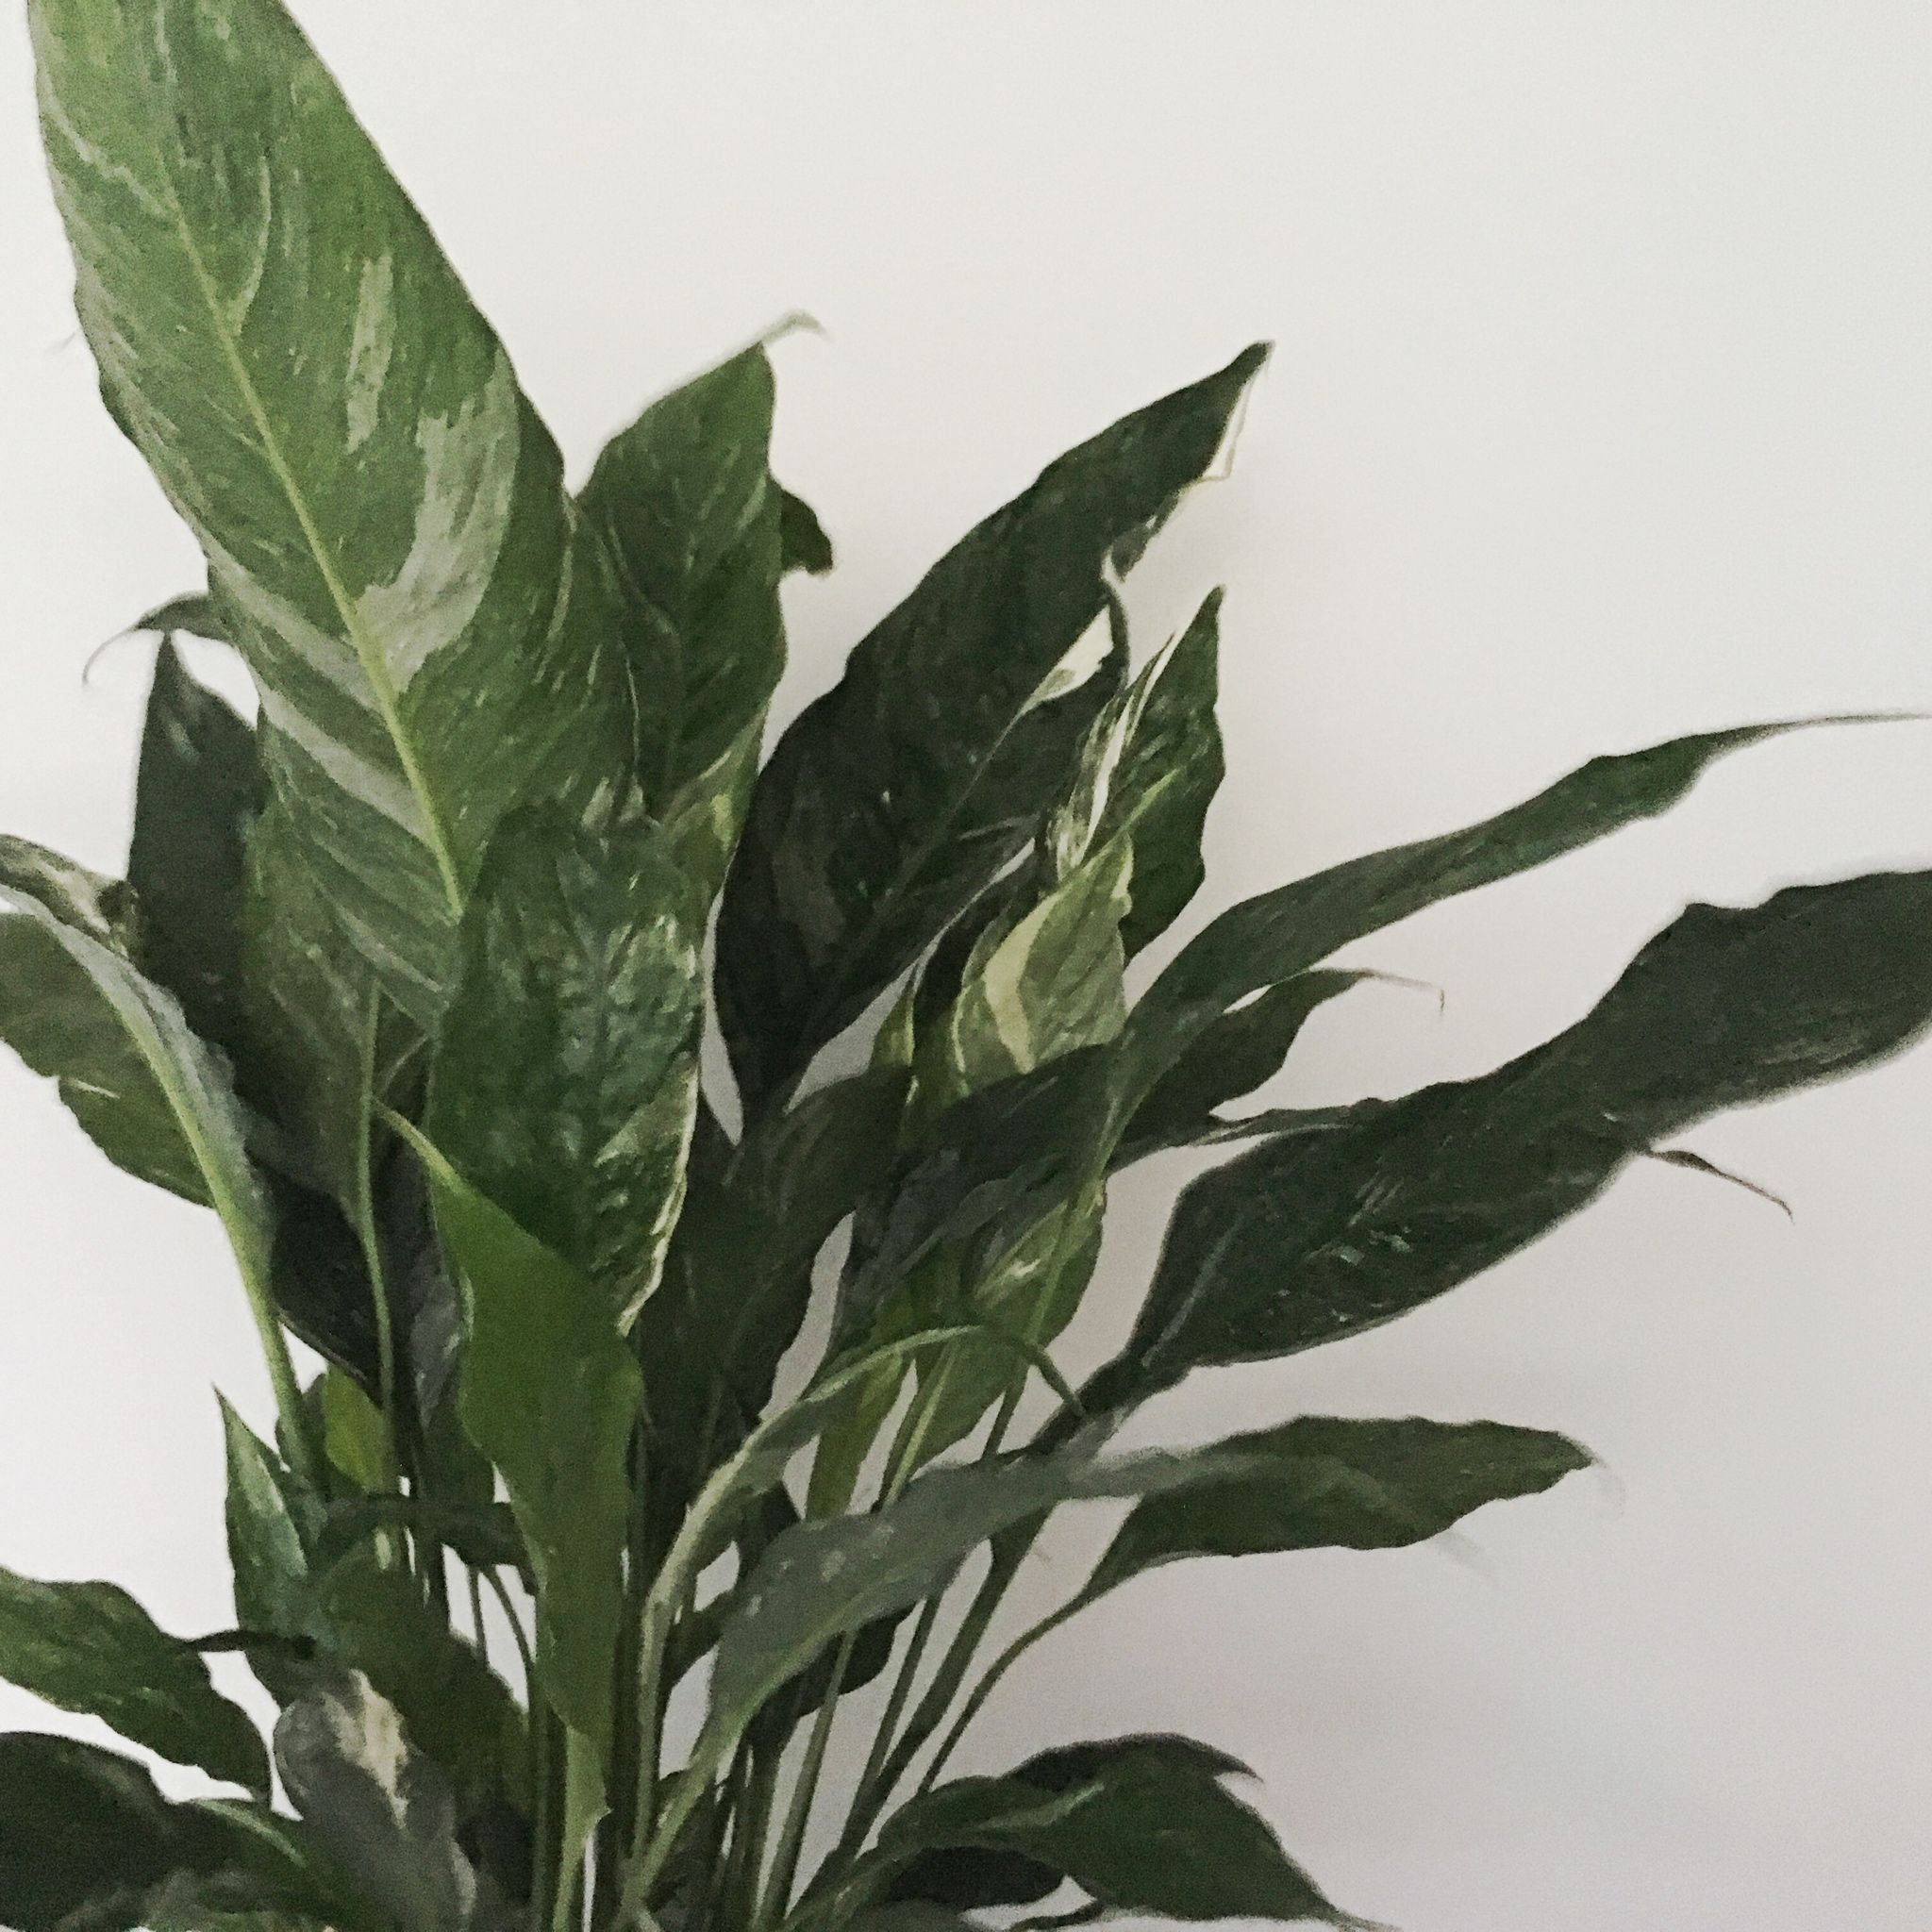 Spathiphyllum Domino Coming From The Regular Peace Lily This Variegated Cousin Has Strong Spotted White Markings